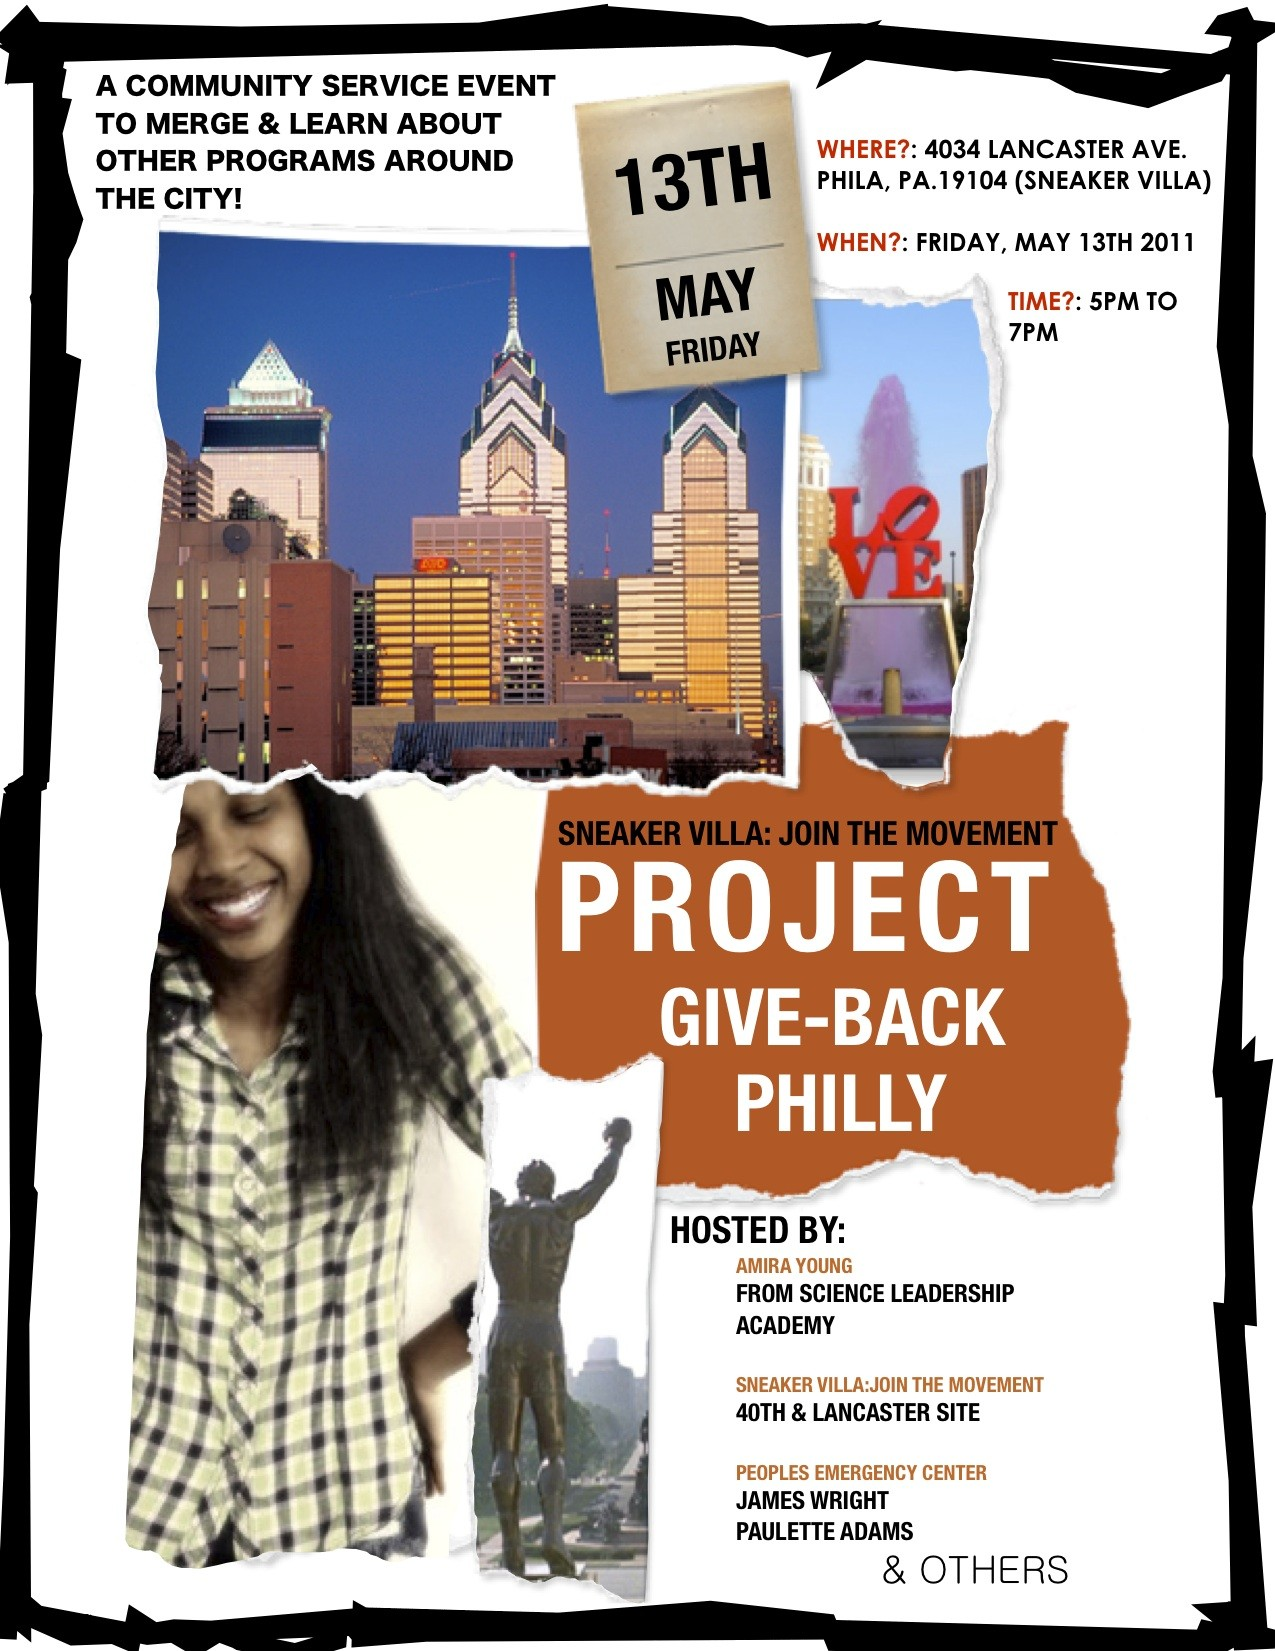 PROJECT GIVE BACK PHILLY